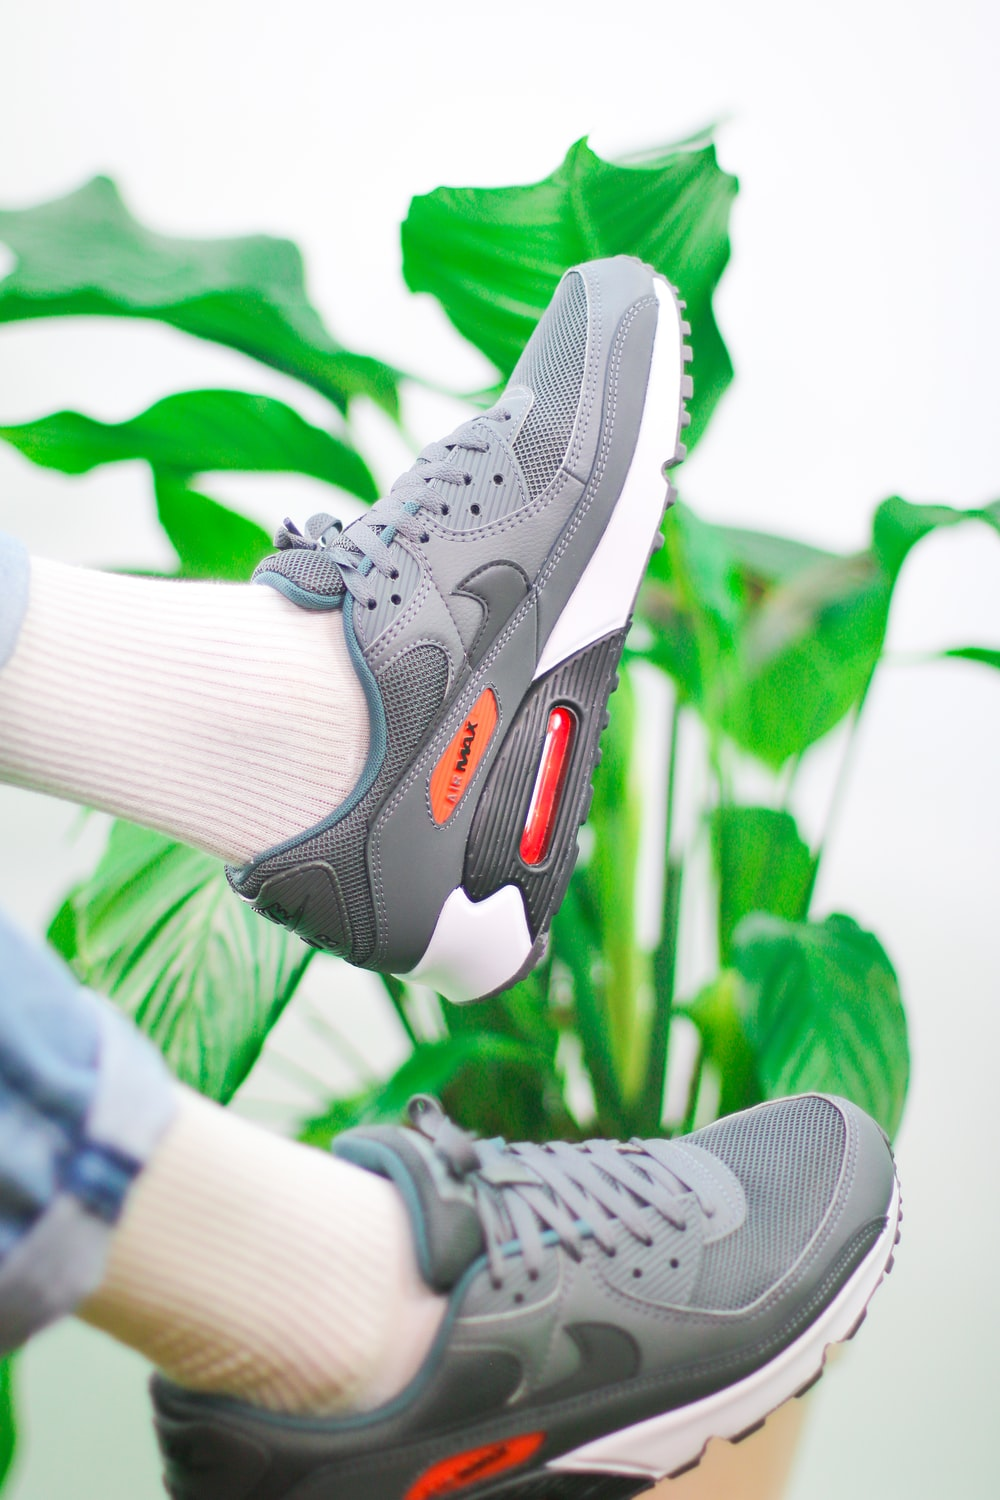 person wearing gray and white nike athletic shoes